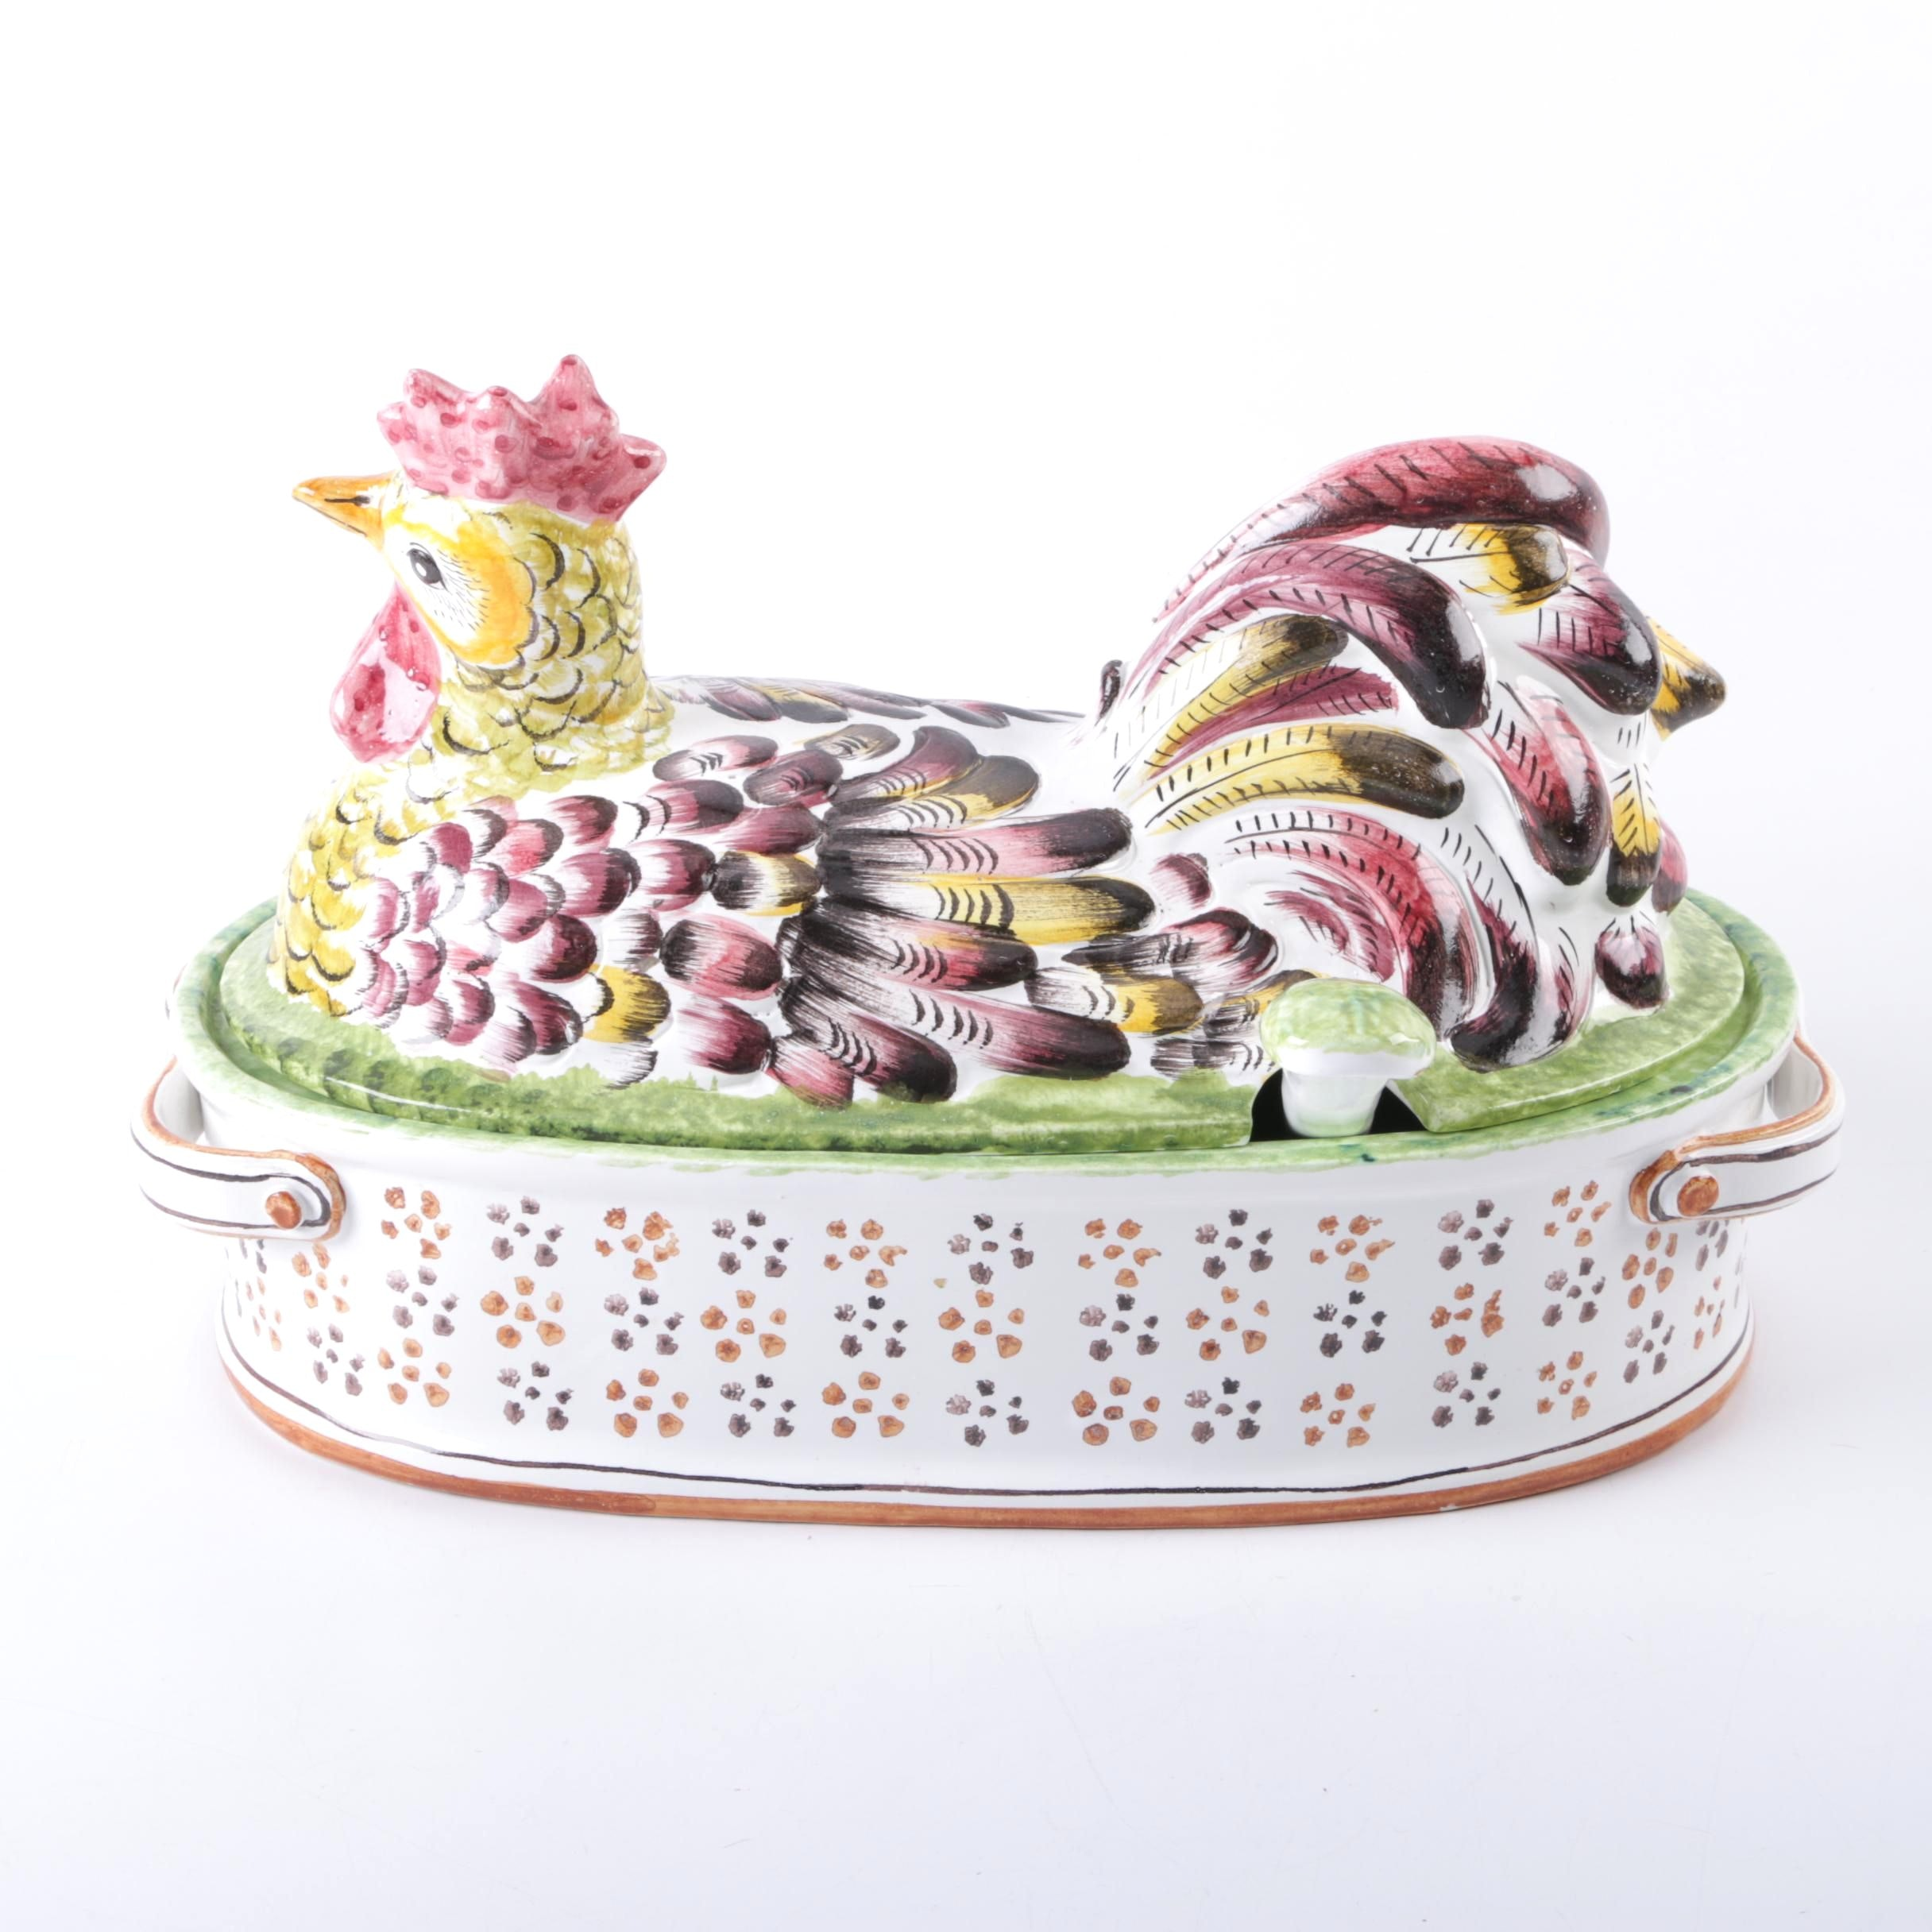 Italian Pottery Ceramic Chicken Soup Tureen with Ladle